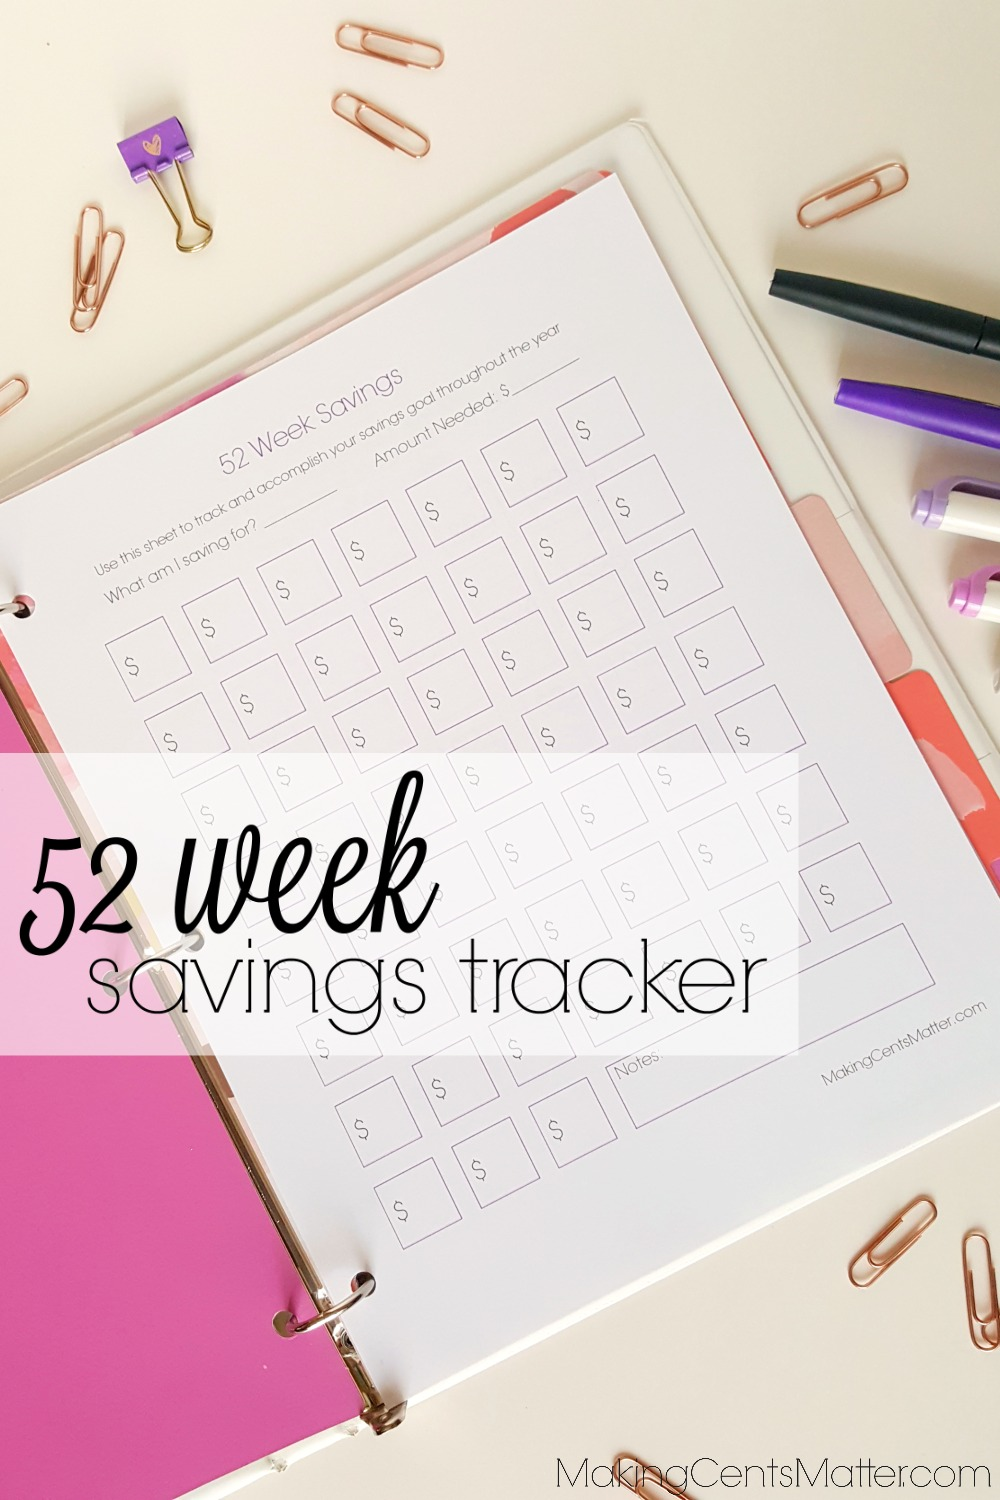 52 Week Savings Tracker